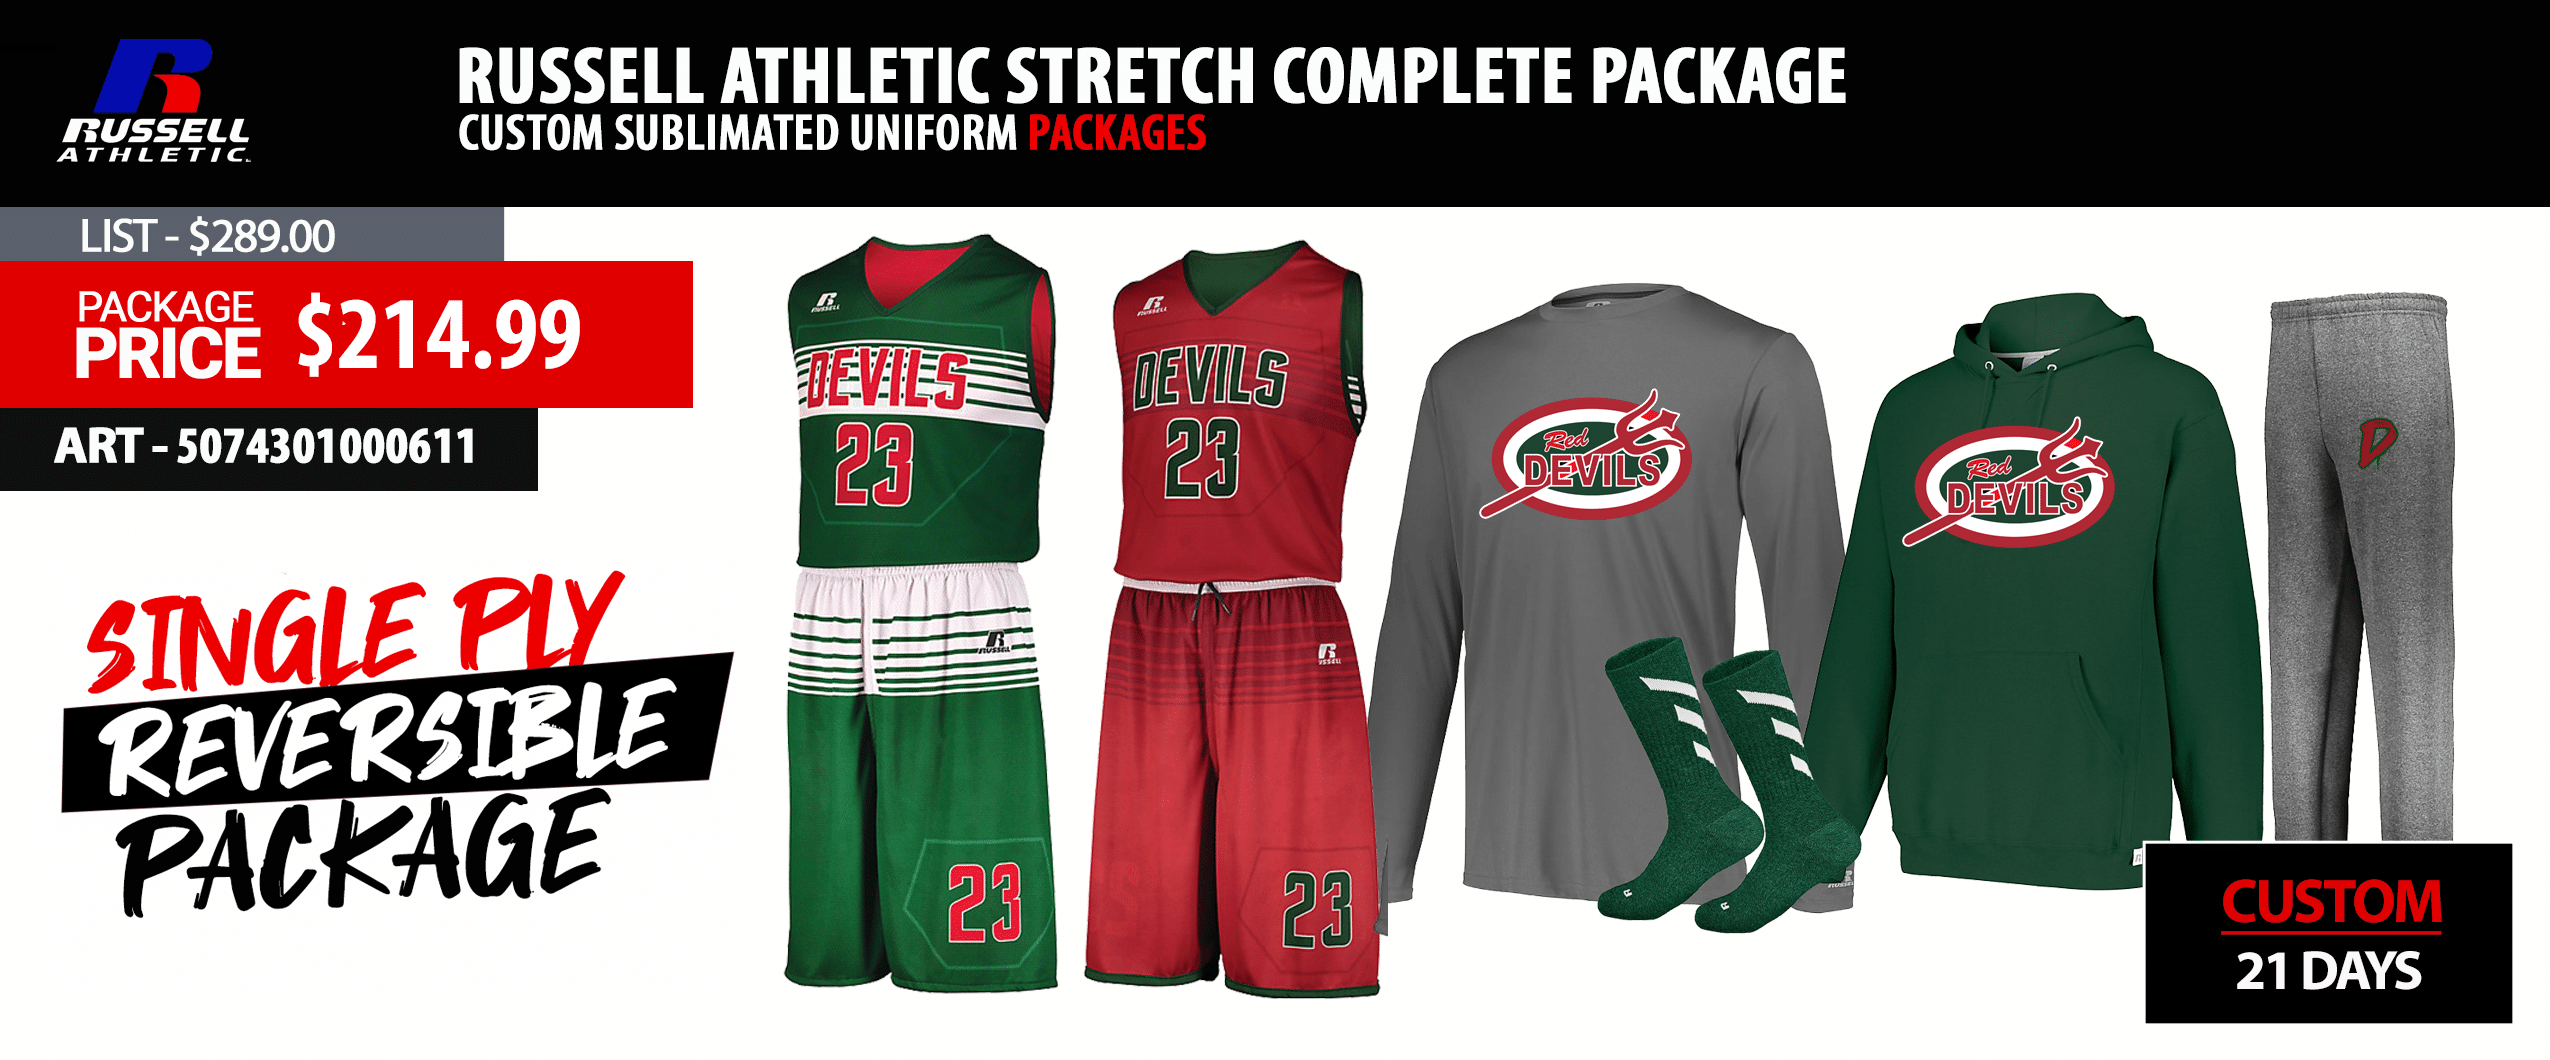 Adidas miTRIPLEUP Basketball Uniform Package - Mens